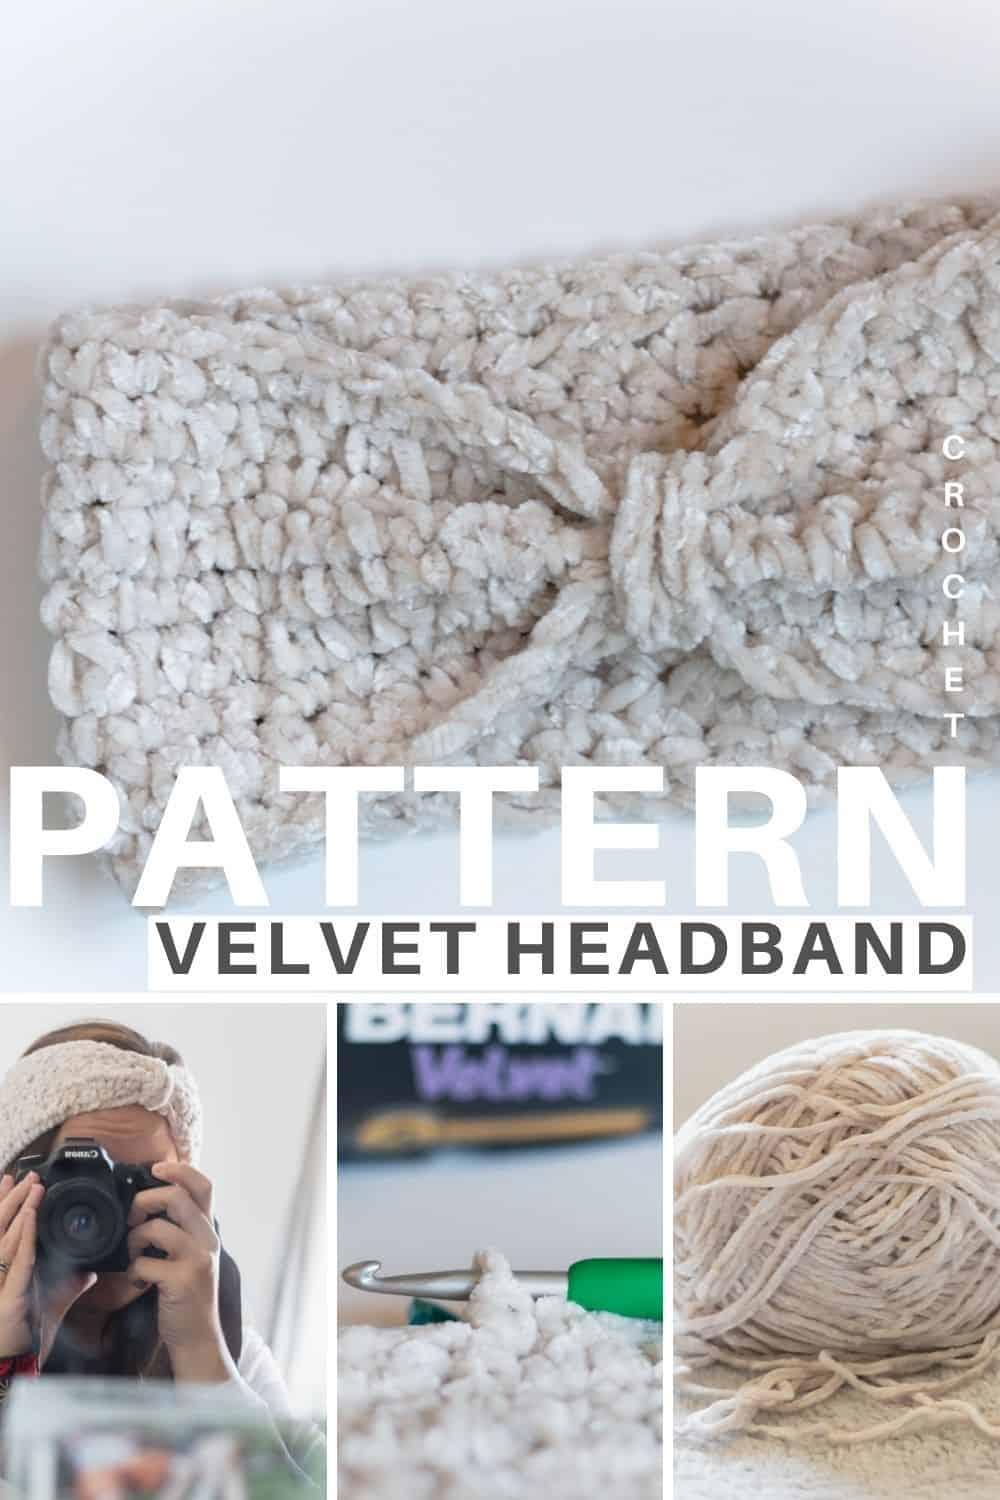 Velvet Headband Crochet pattern